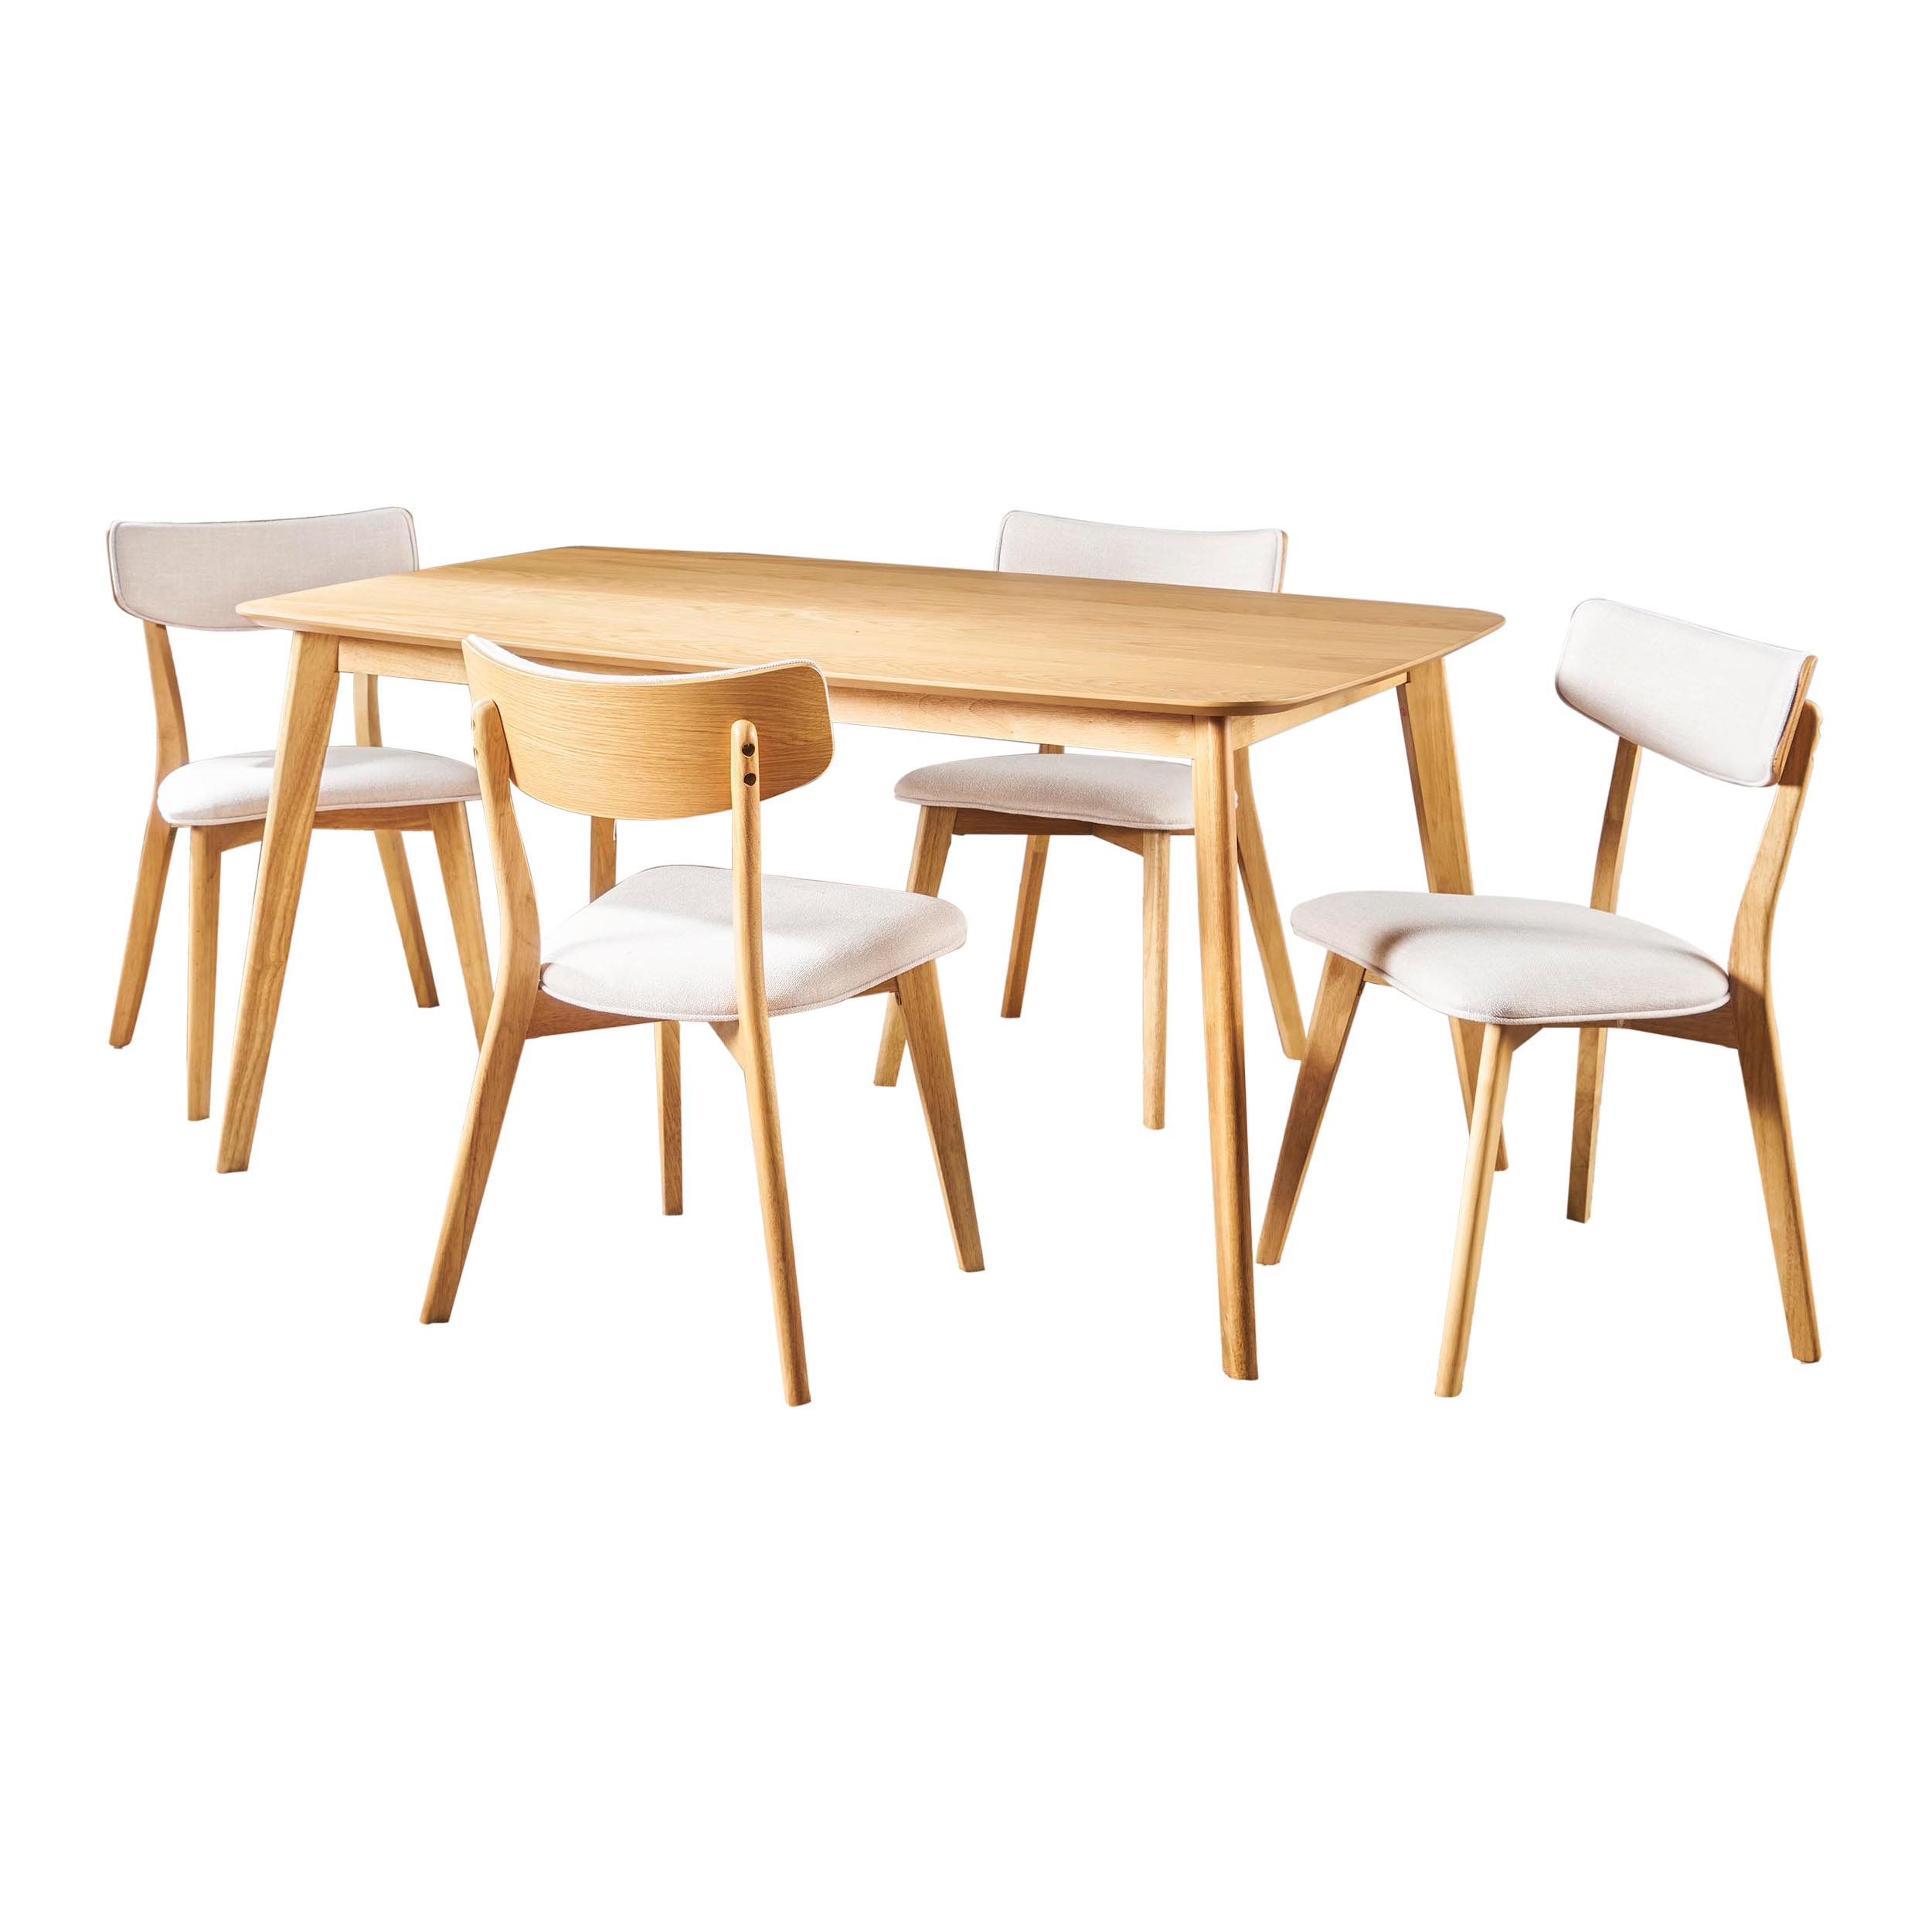 Antonio Mid Century Natural Oak Finished 5 Piece Wood Dining Set with Fabric Chairs, Light Beige